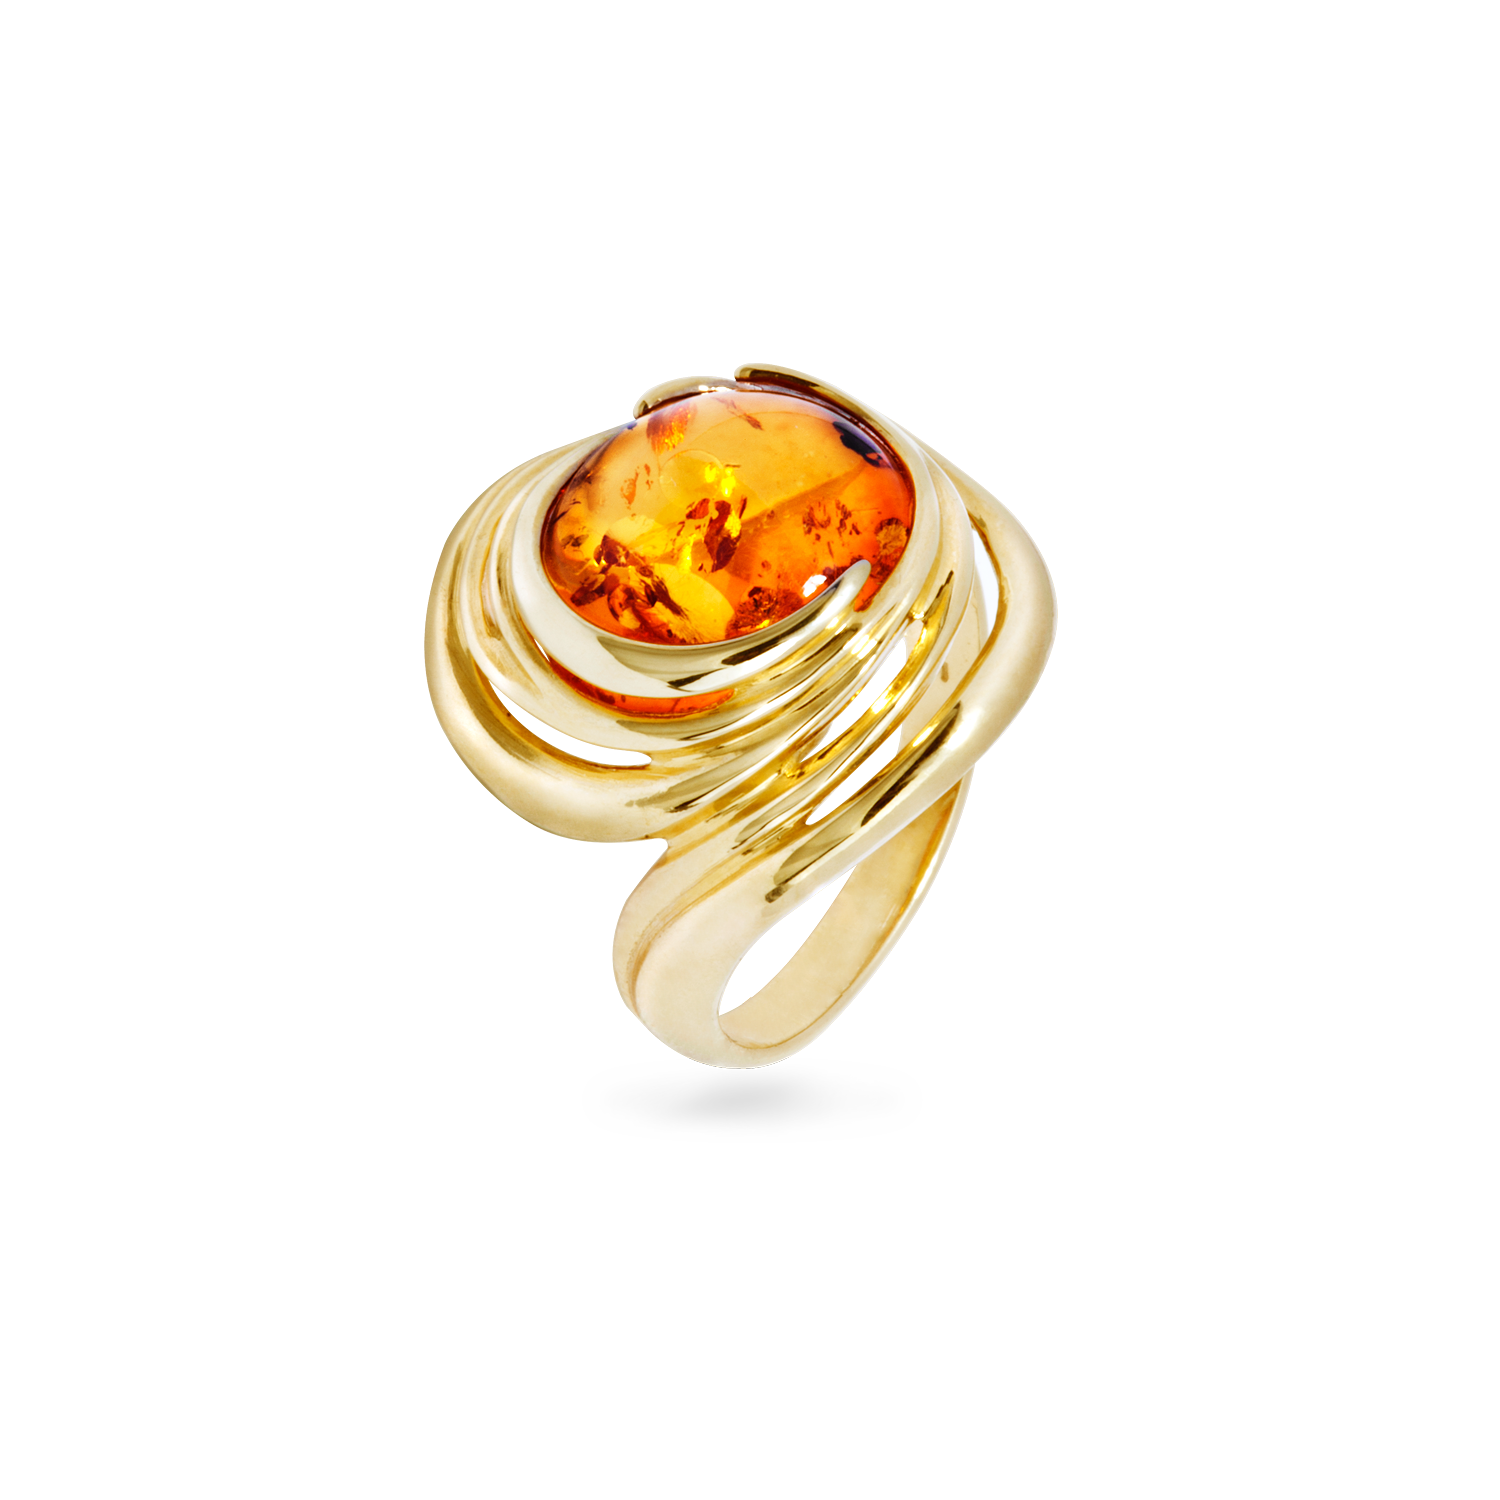 non ring shaped rings pave citrine engagement diamond branded gold jewelry amber white cocktail pear